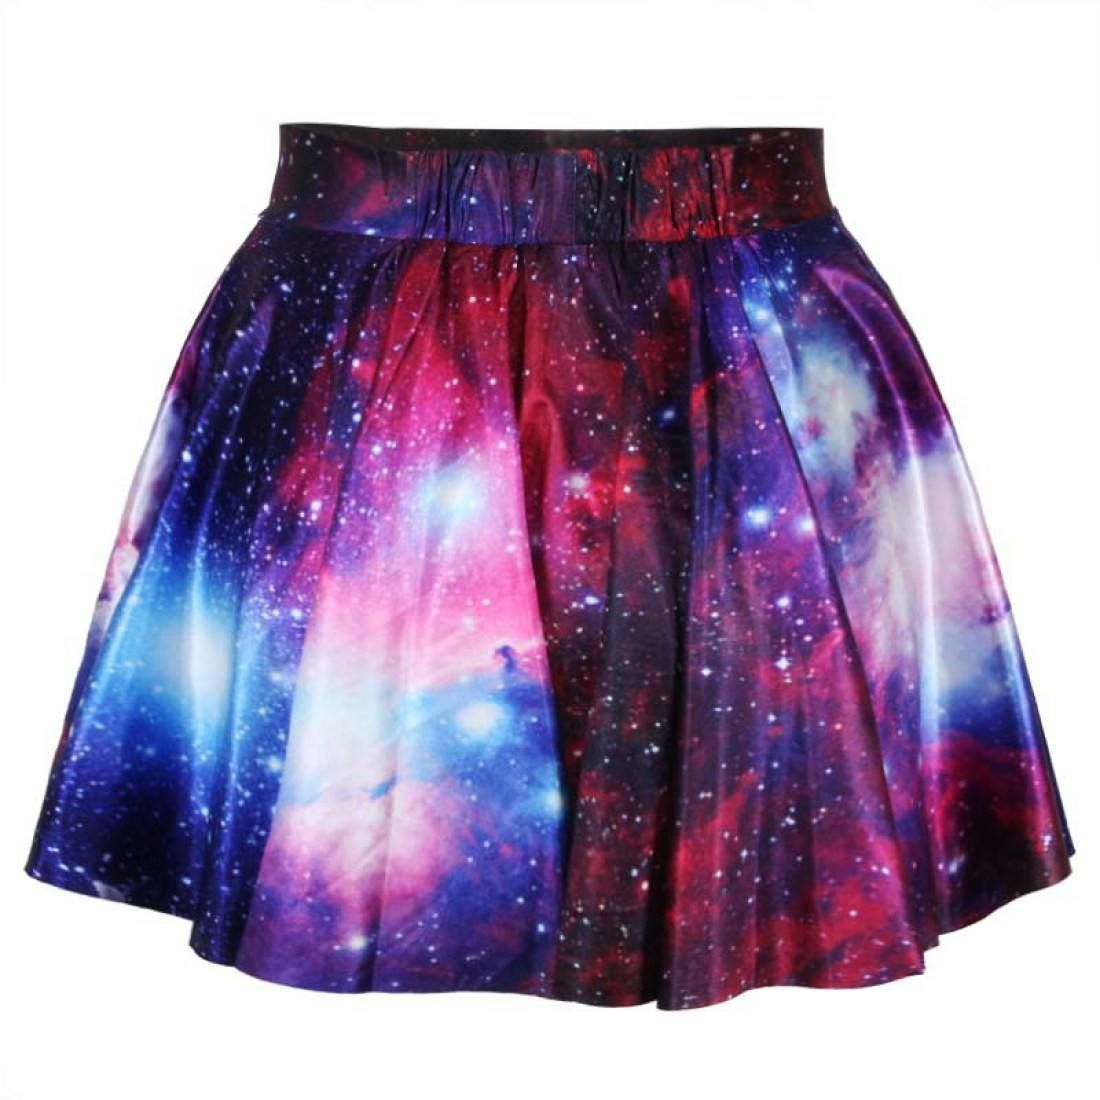 Universe Cosmic Galaxy Nebula Space Print Circle Skirt with Elastic ...